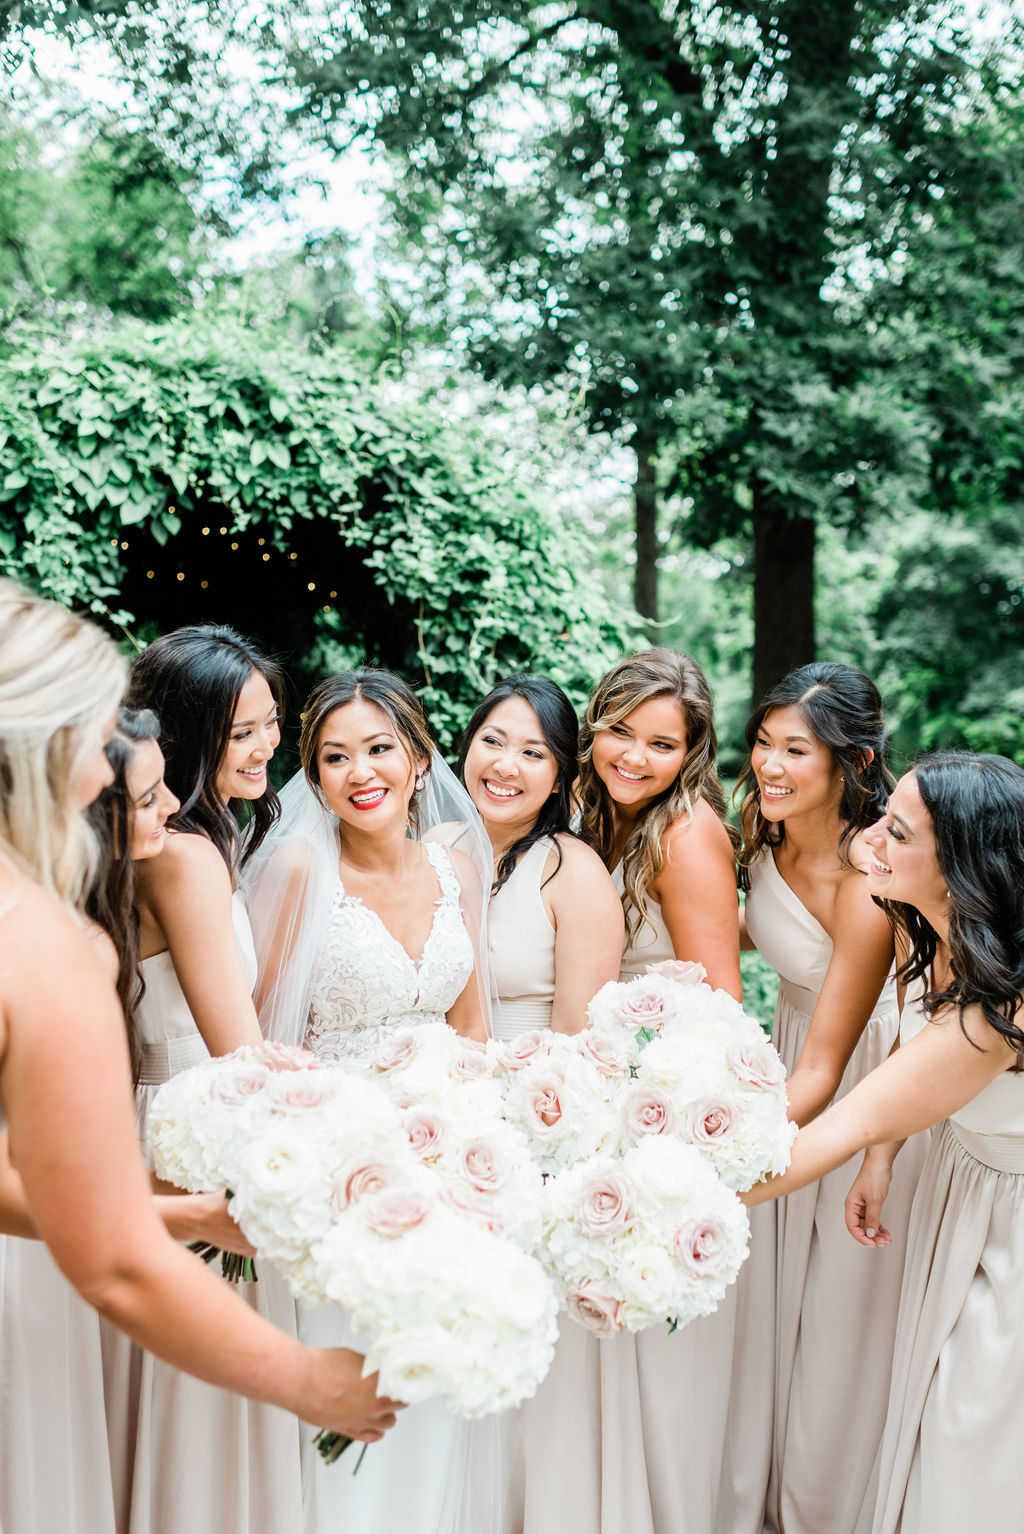 Pink and white wedding bouquets: Wedding portrait by Nashville wedding photographer Maria Gloer Photography